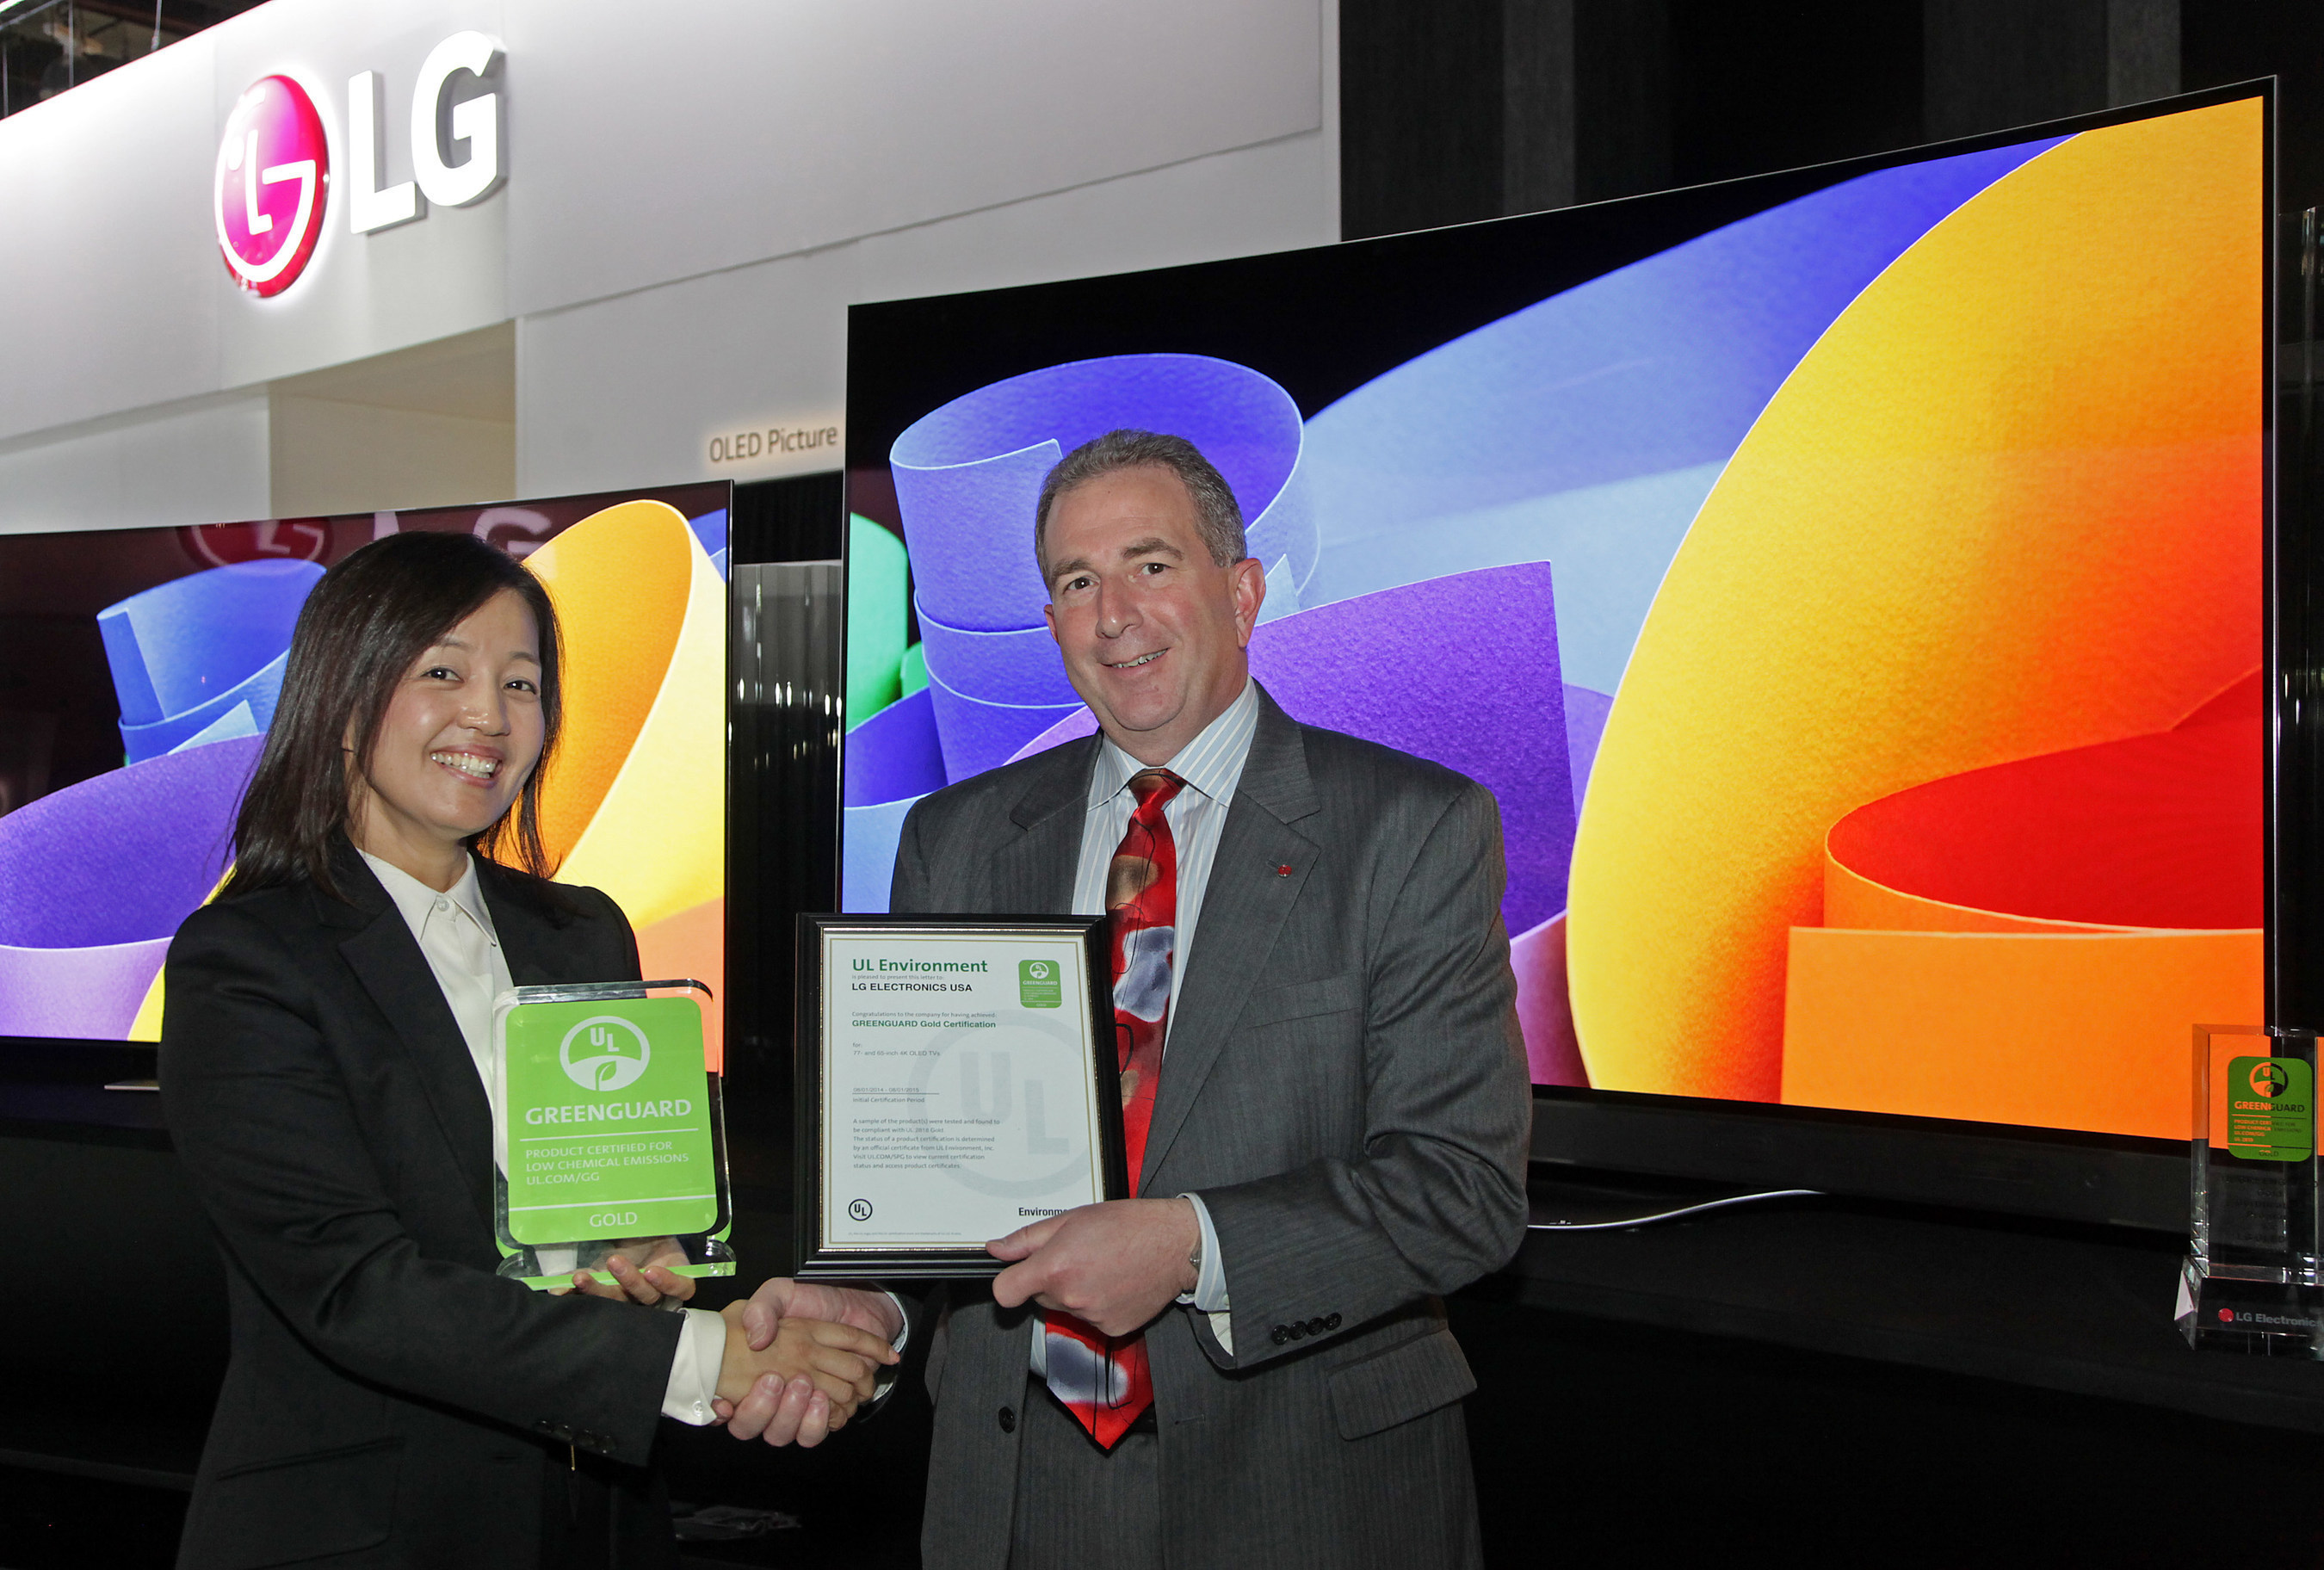 LG Electronics USA and UL Environment announced that LG's new 55-, 65- and 77-inch class 4K Ultra HD OLED TVs have received the coveted GREENGUARD Certification, which sets a new precedent for television manufacturers to help create healthier indoor environments. At an award ceremony at the 2015 International CES are Jamie Yeom, Global Account Director, Business Development & Marketing, UL Korea Ltd., and Tim Alessi, LG's U.S. Head of New Product Development.